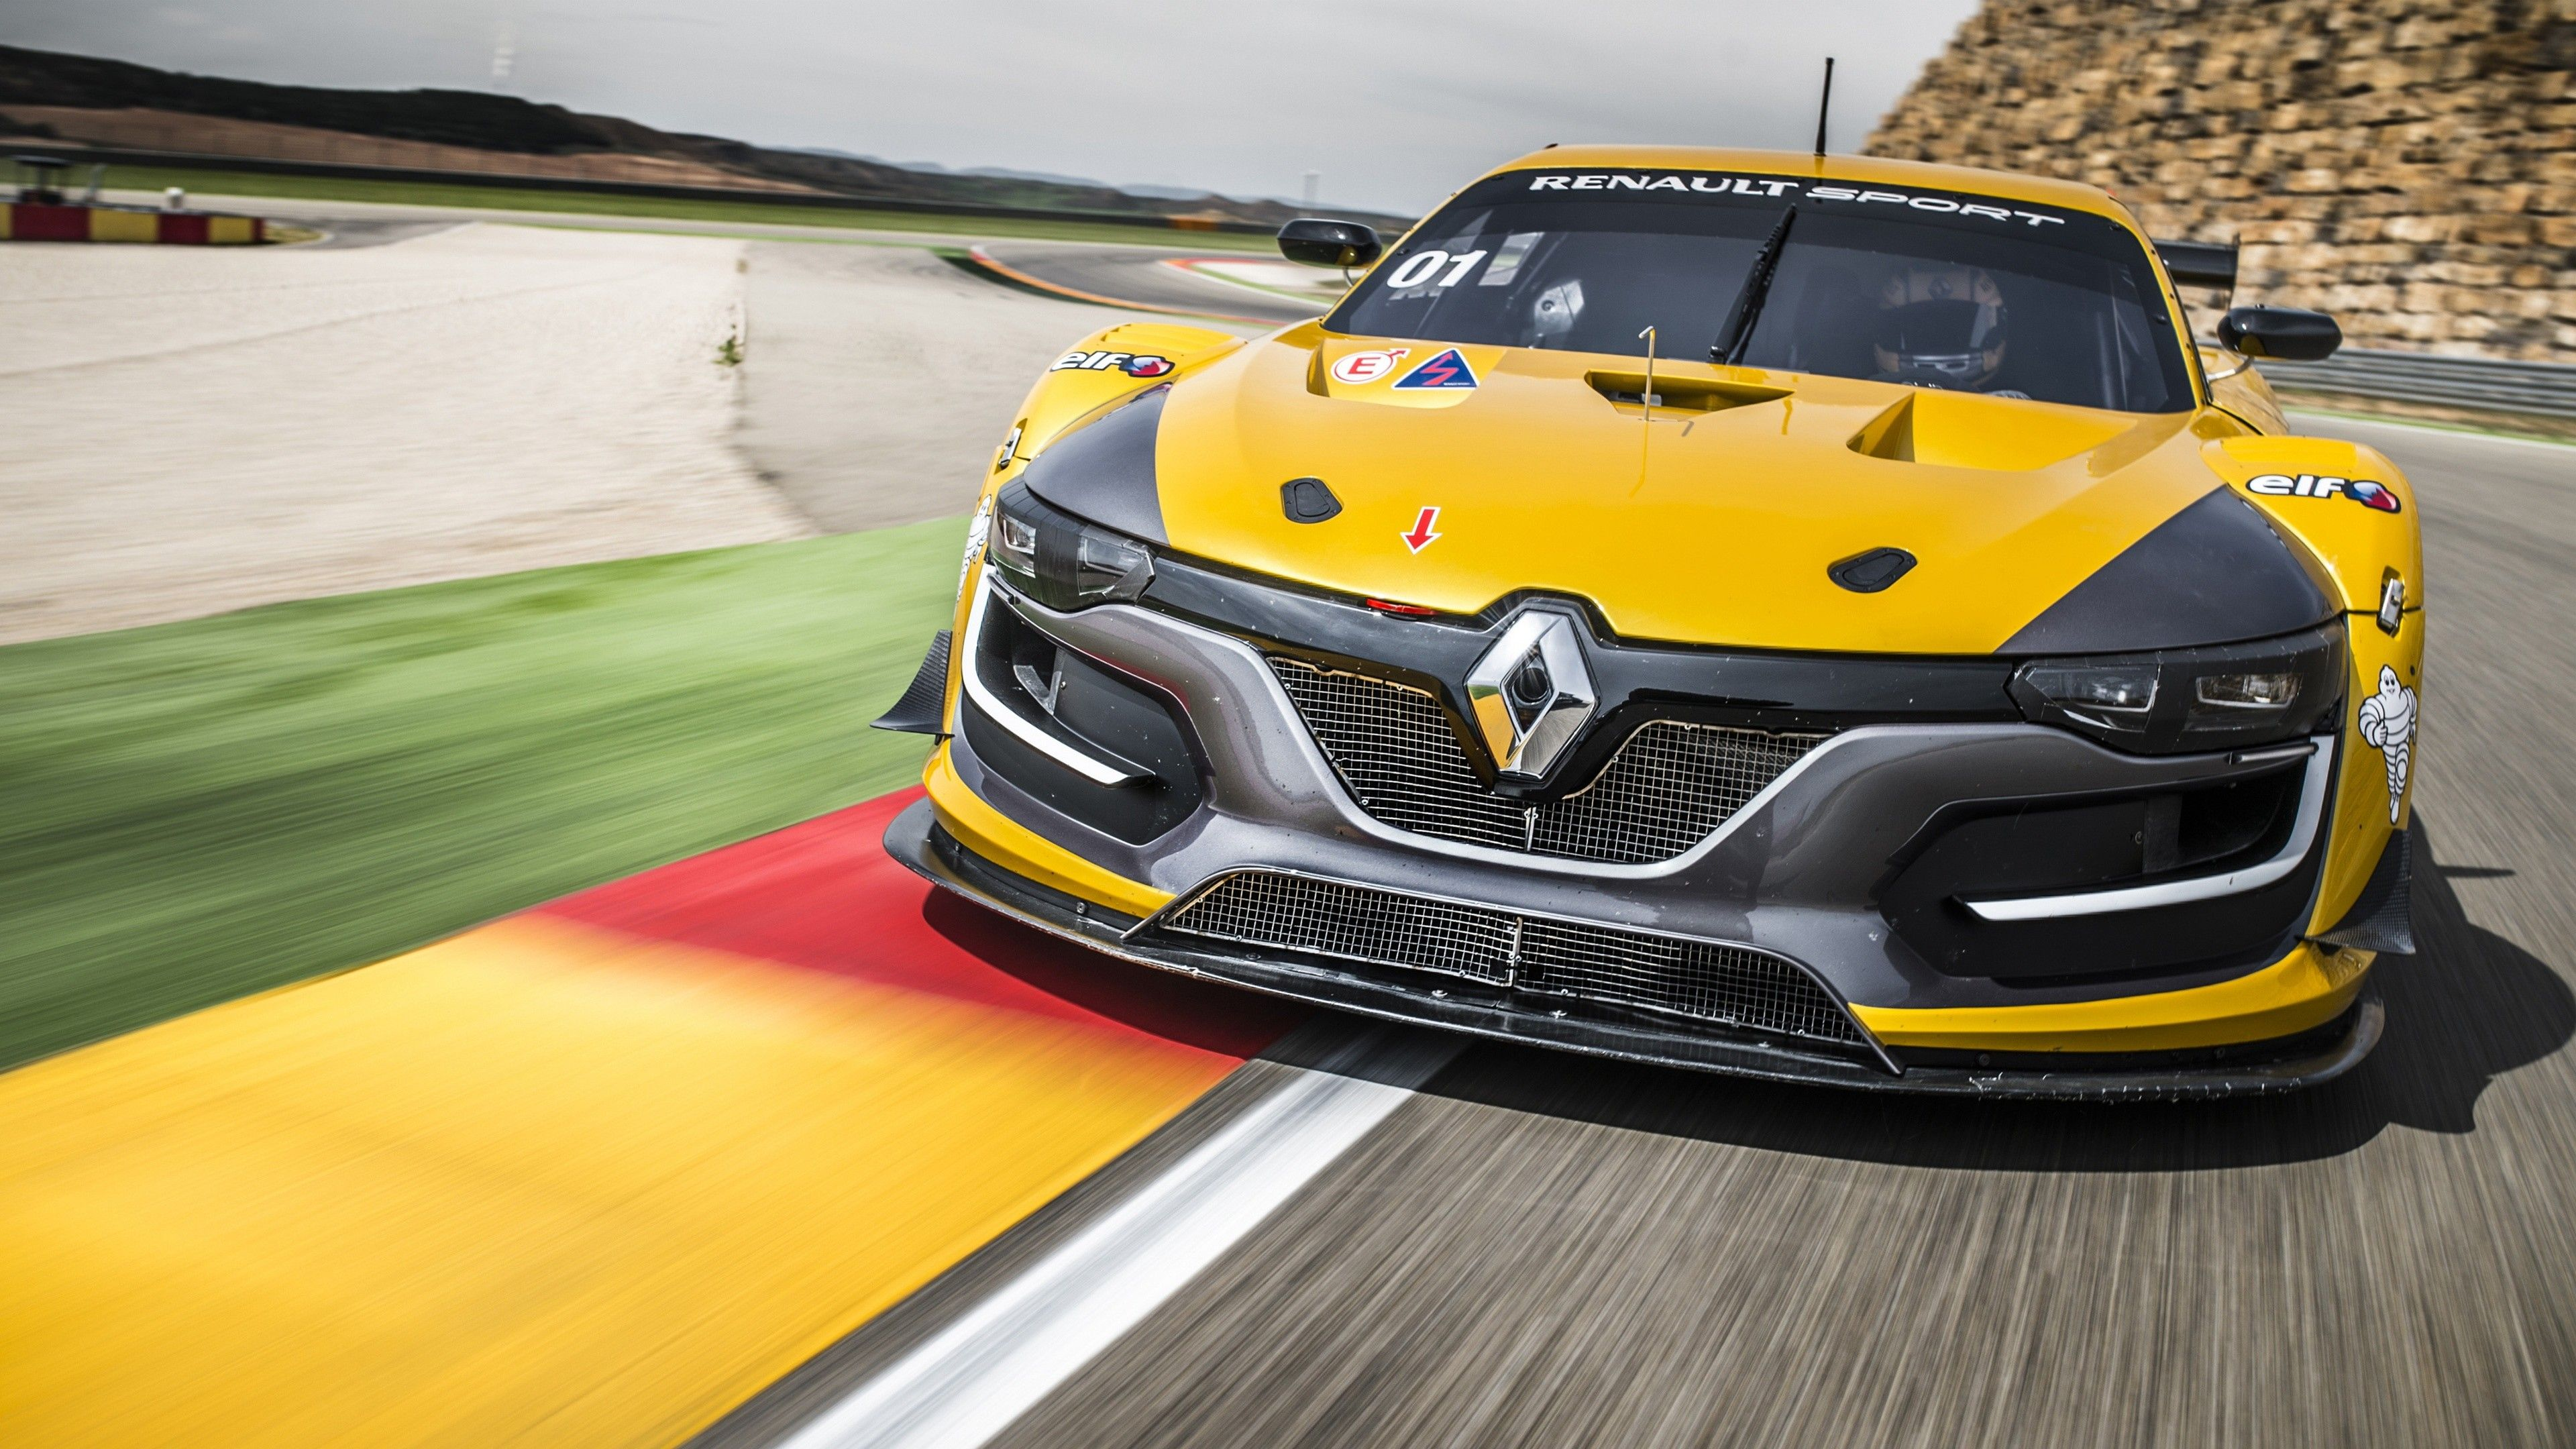 3840x2160 Renault Sport Rs Racing Car Car Wallpapers Street Racing Cars Renault